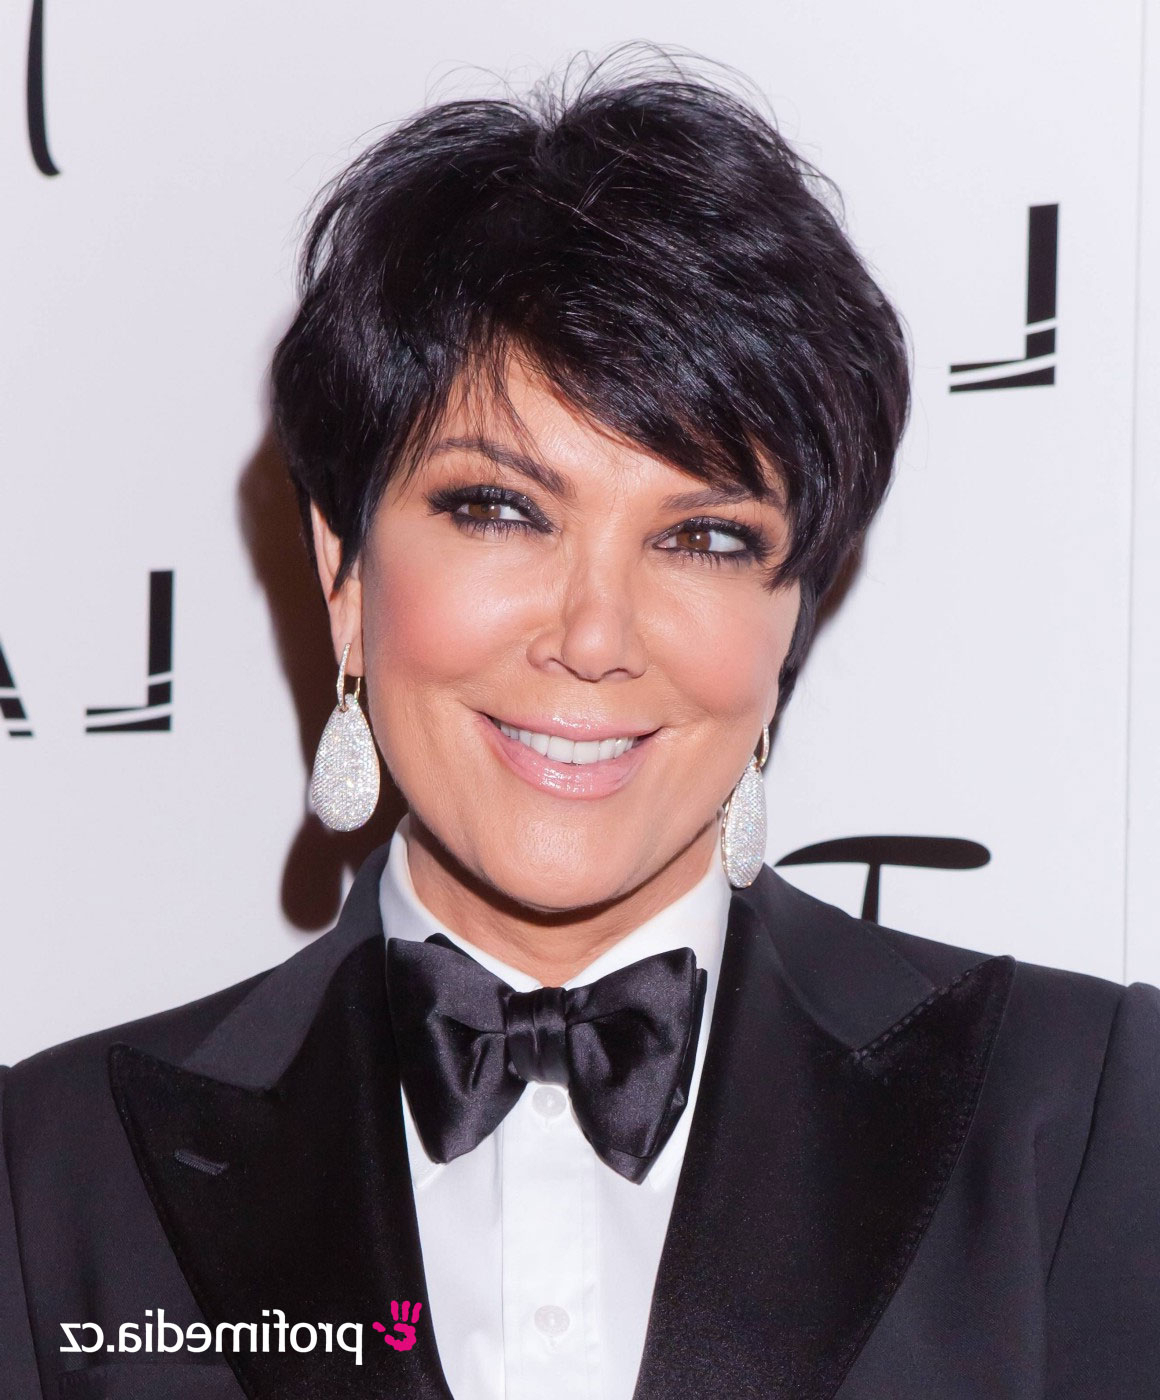 Kris Jenner – – Hairstyle – Easyhairstyler With Regard To Kris Jenner Short Hairstyles (View 25 of 25)